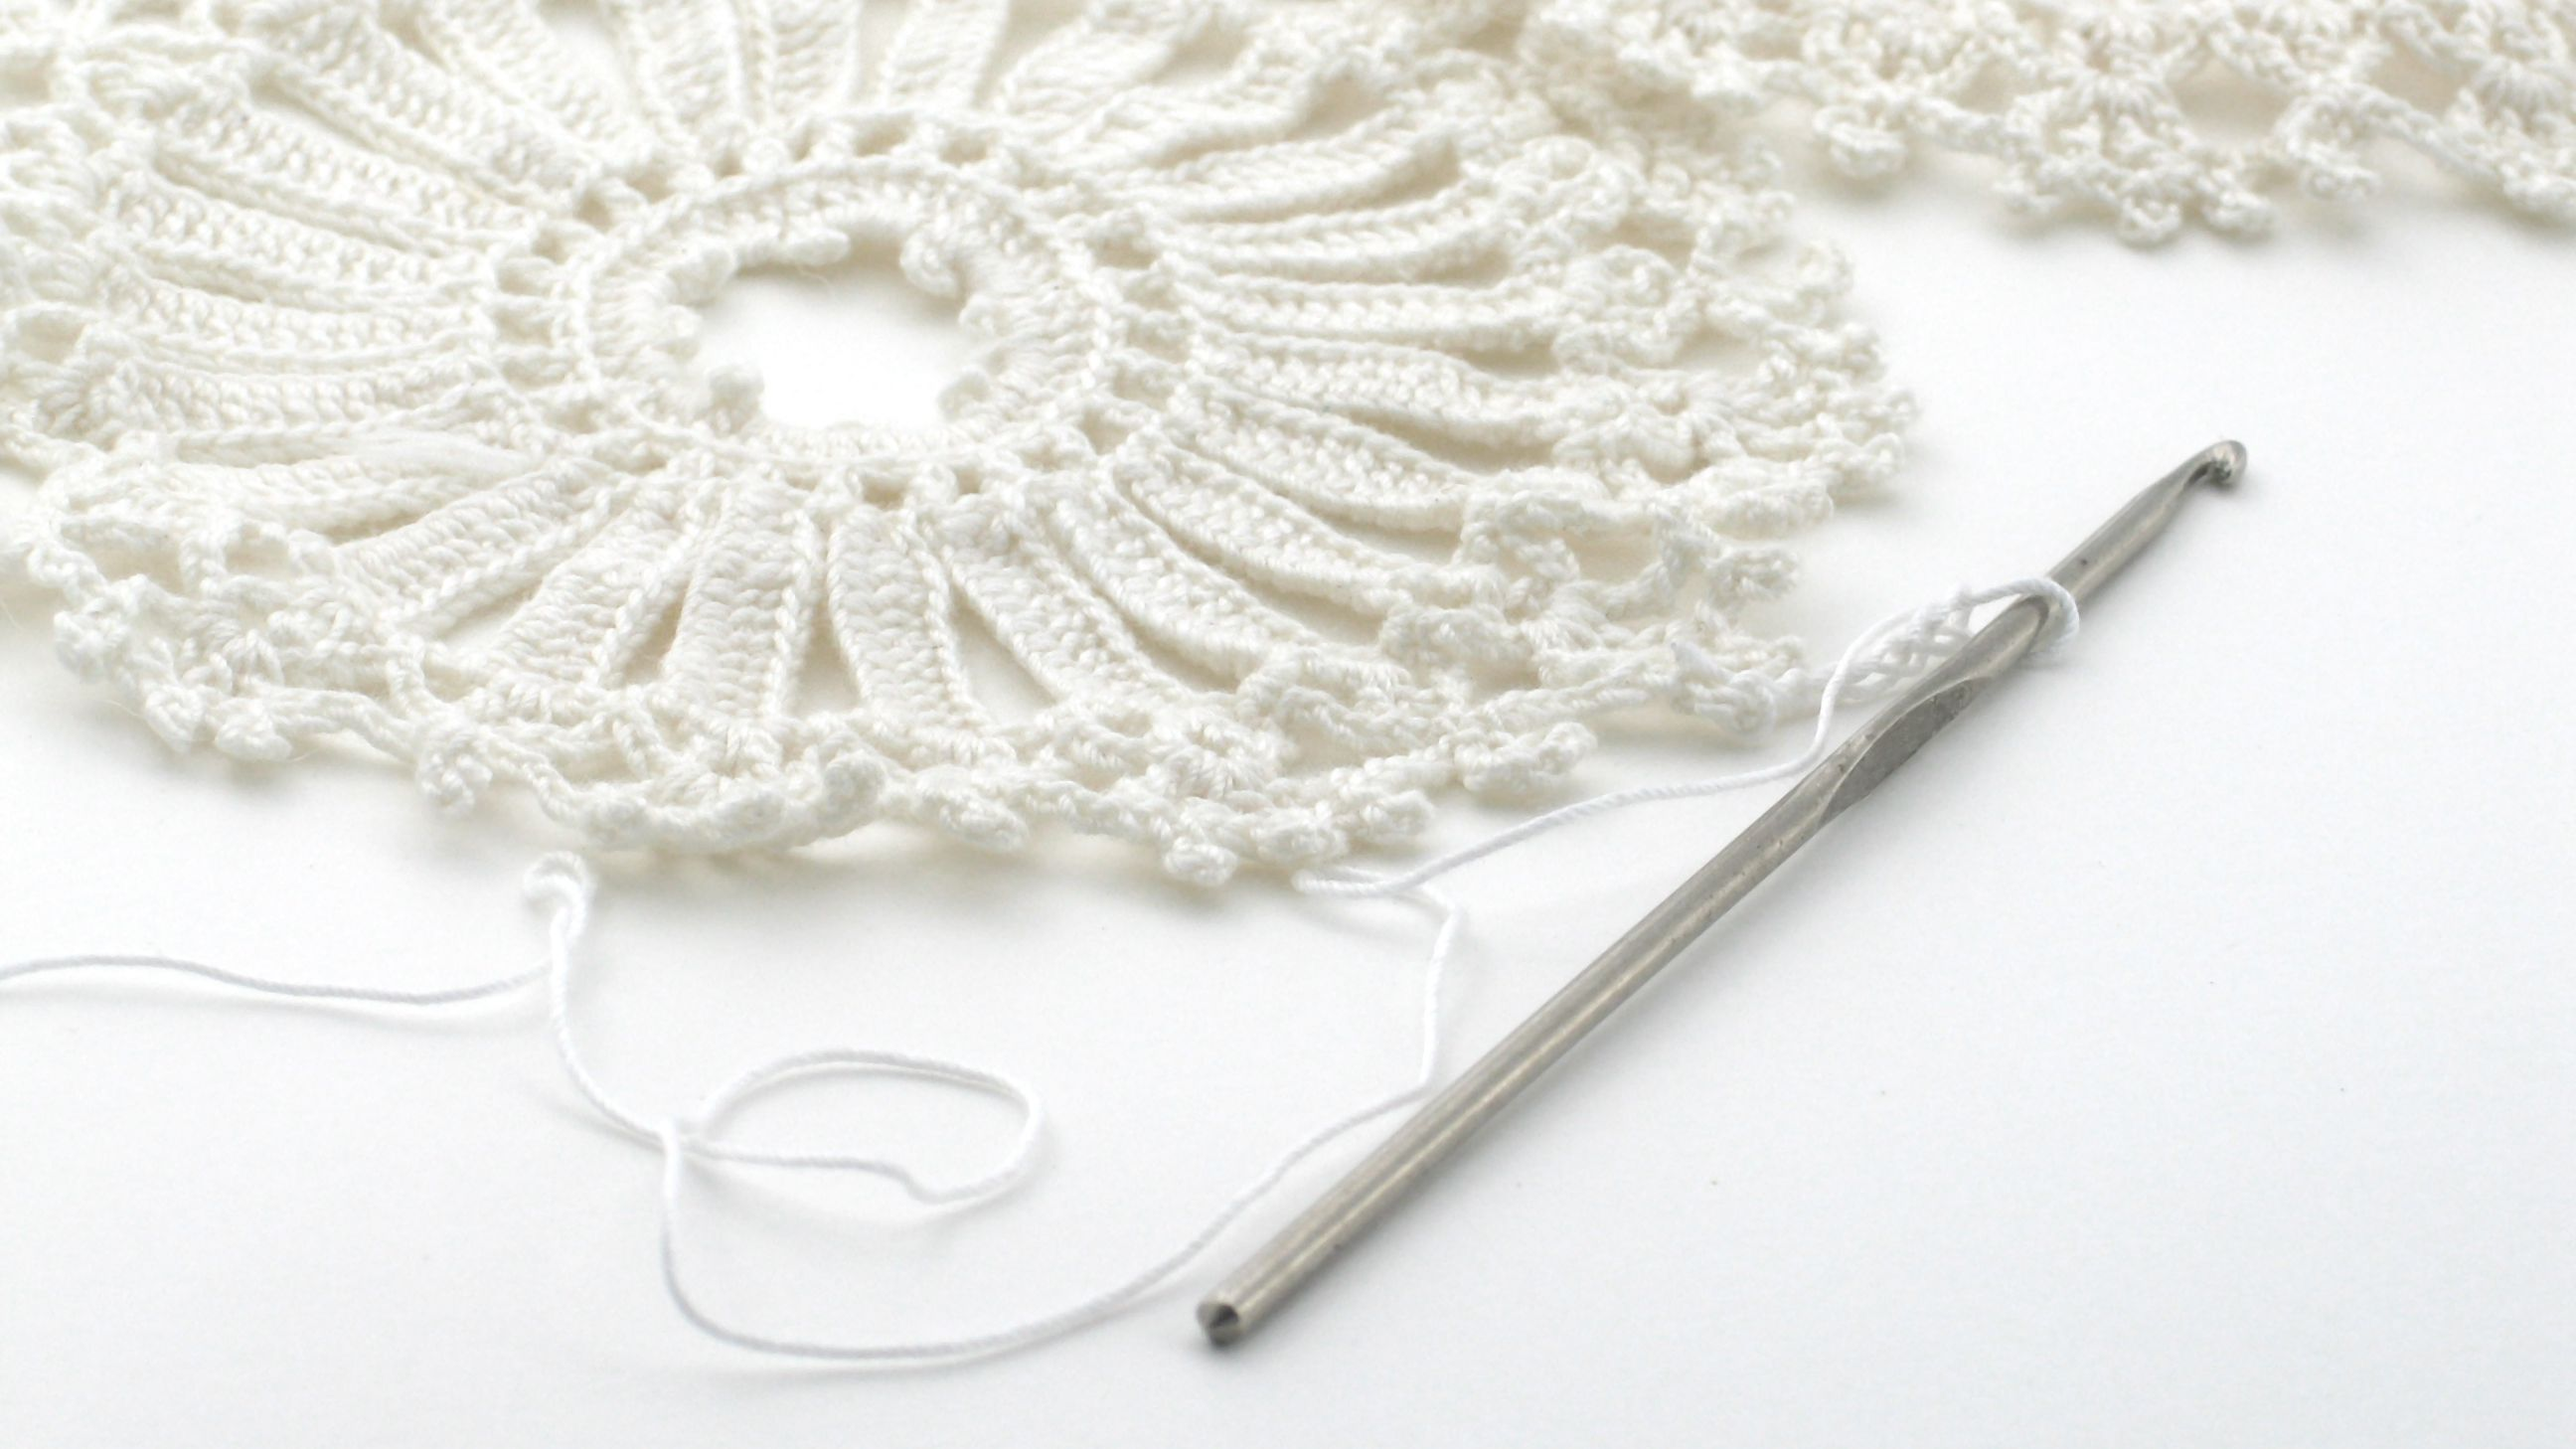 10 Free Thread And Lace Crochet Doily Patterns